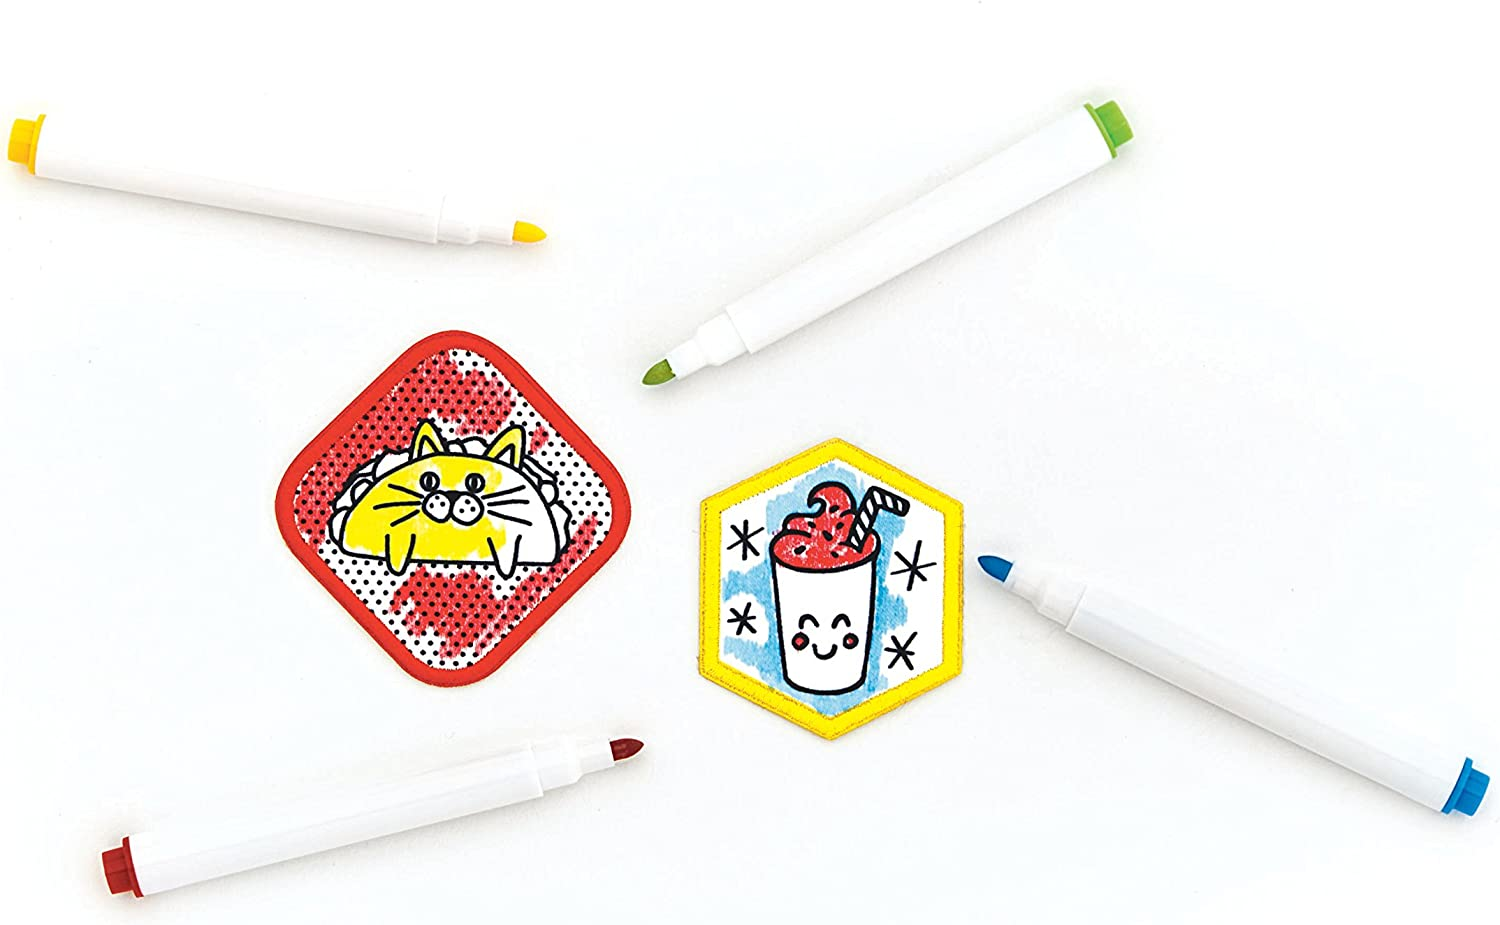 Design Your Own Iron-On Patches and Pins Craft Kit Creativity for Kids Pin /& Patch Studio